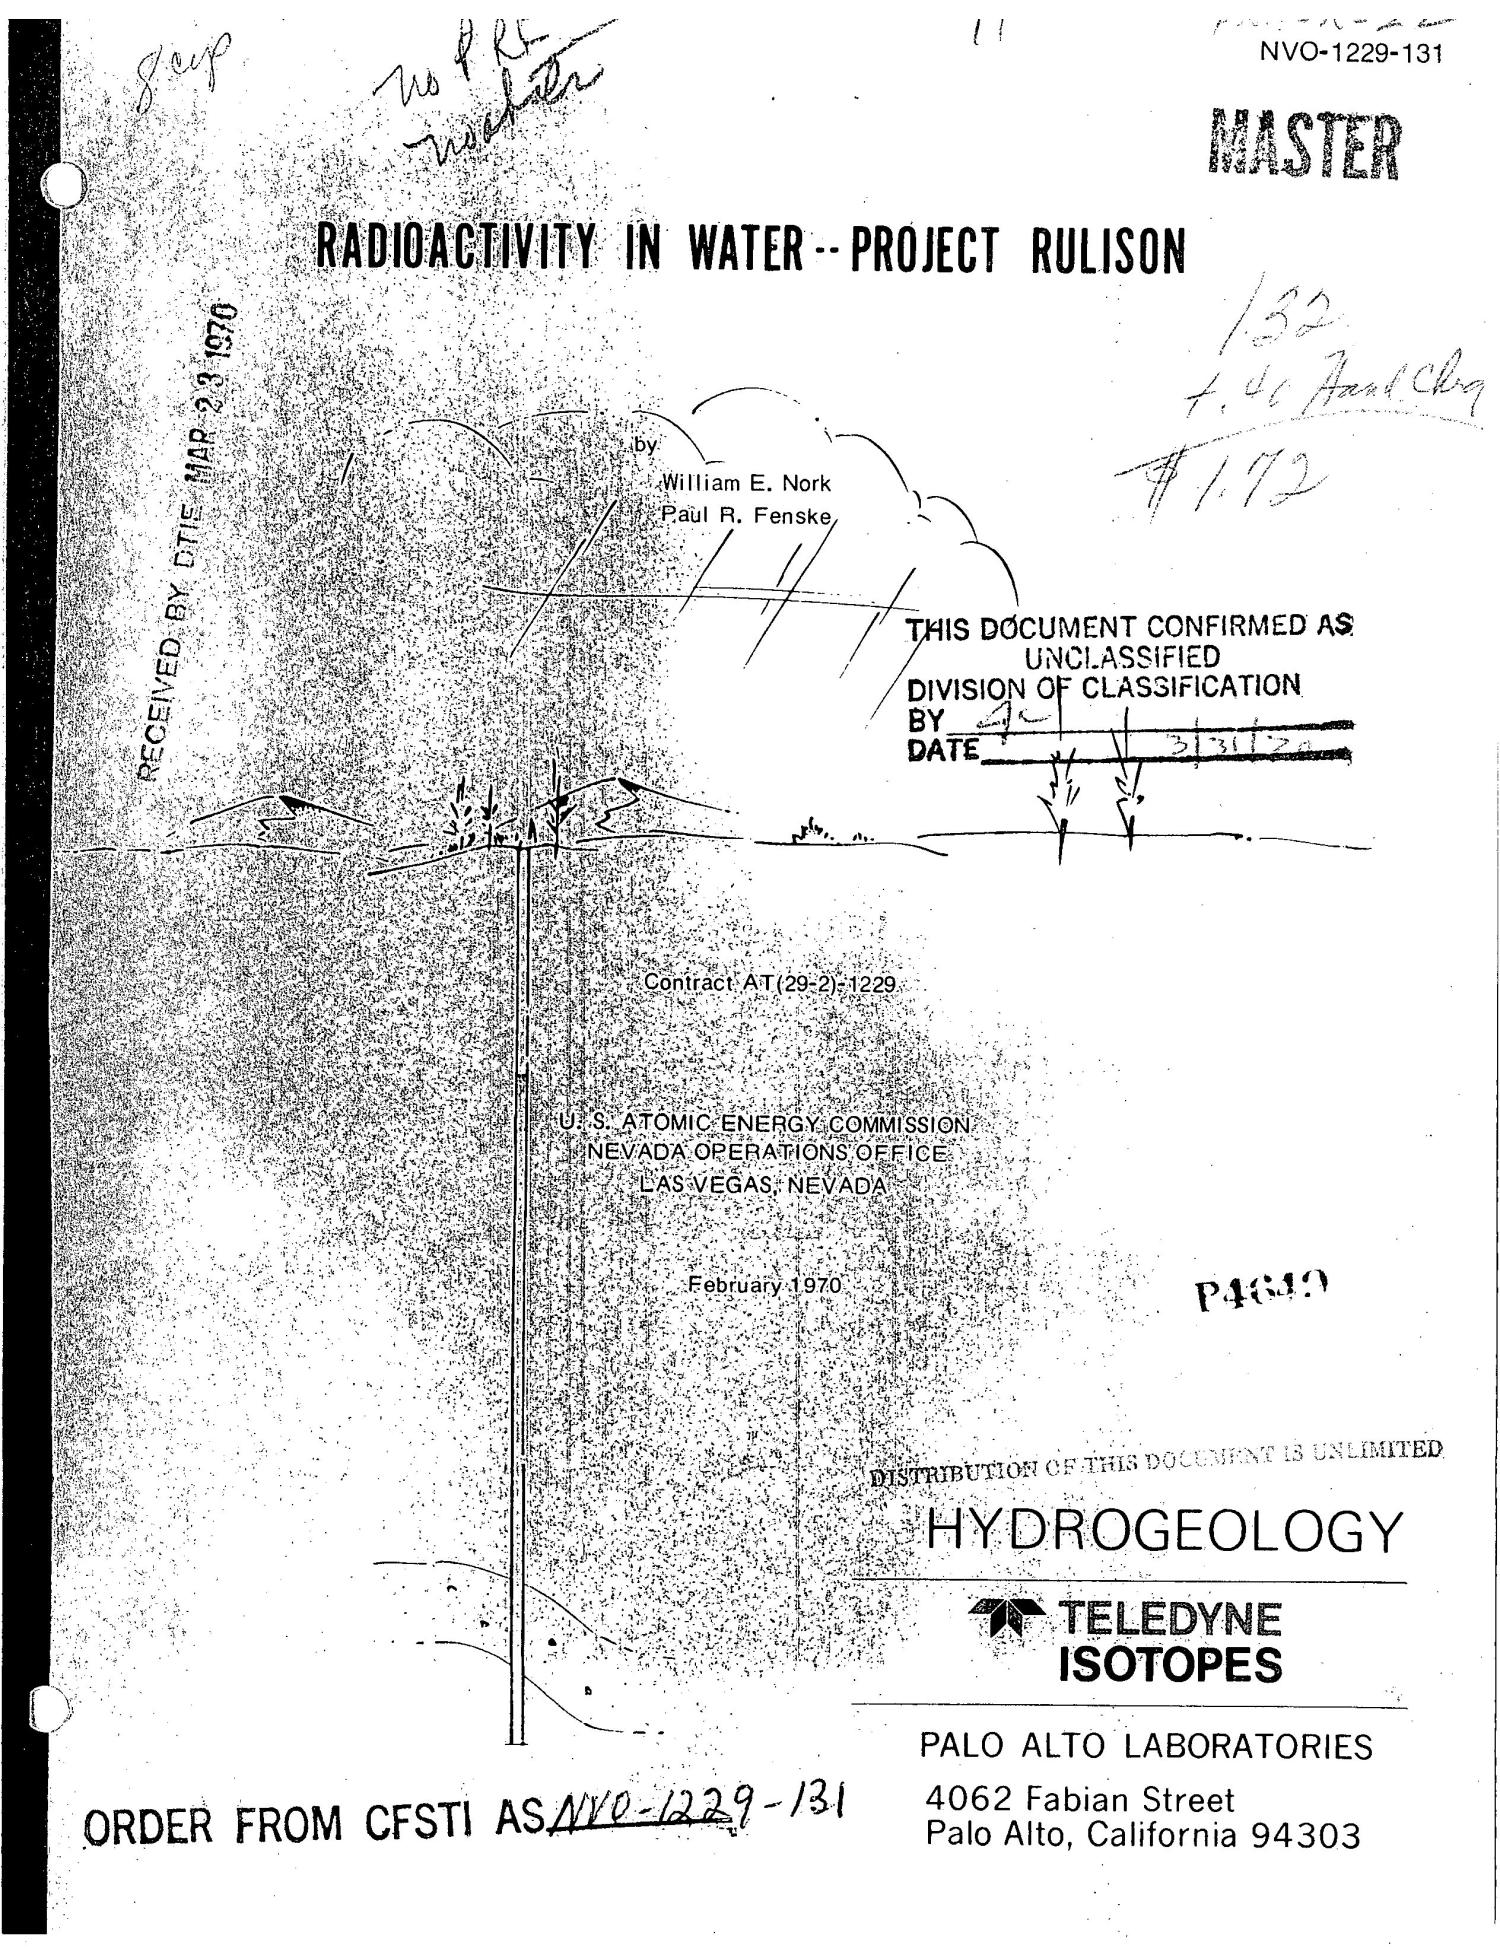 Radioactivity in Water: Project Rulison.                                                                                                      [Sequence #]: 1 of 25